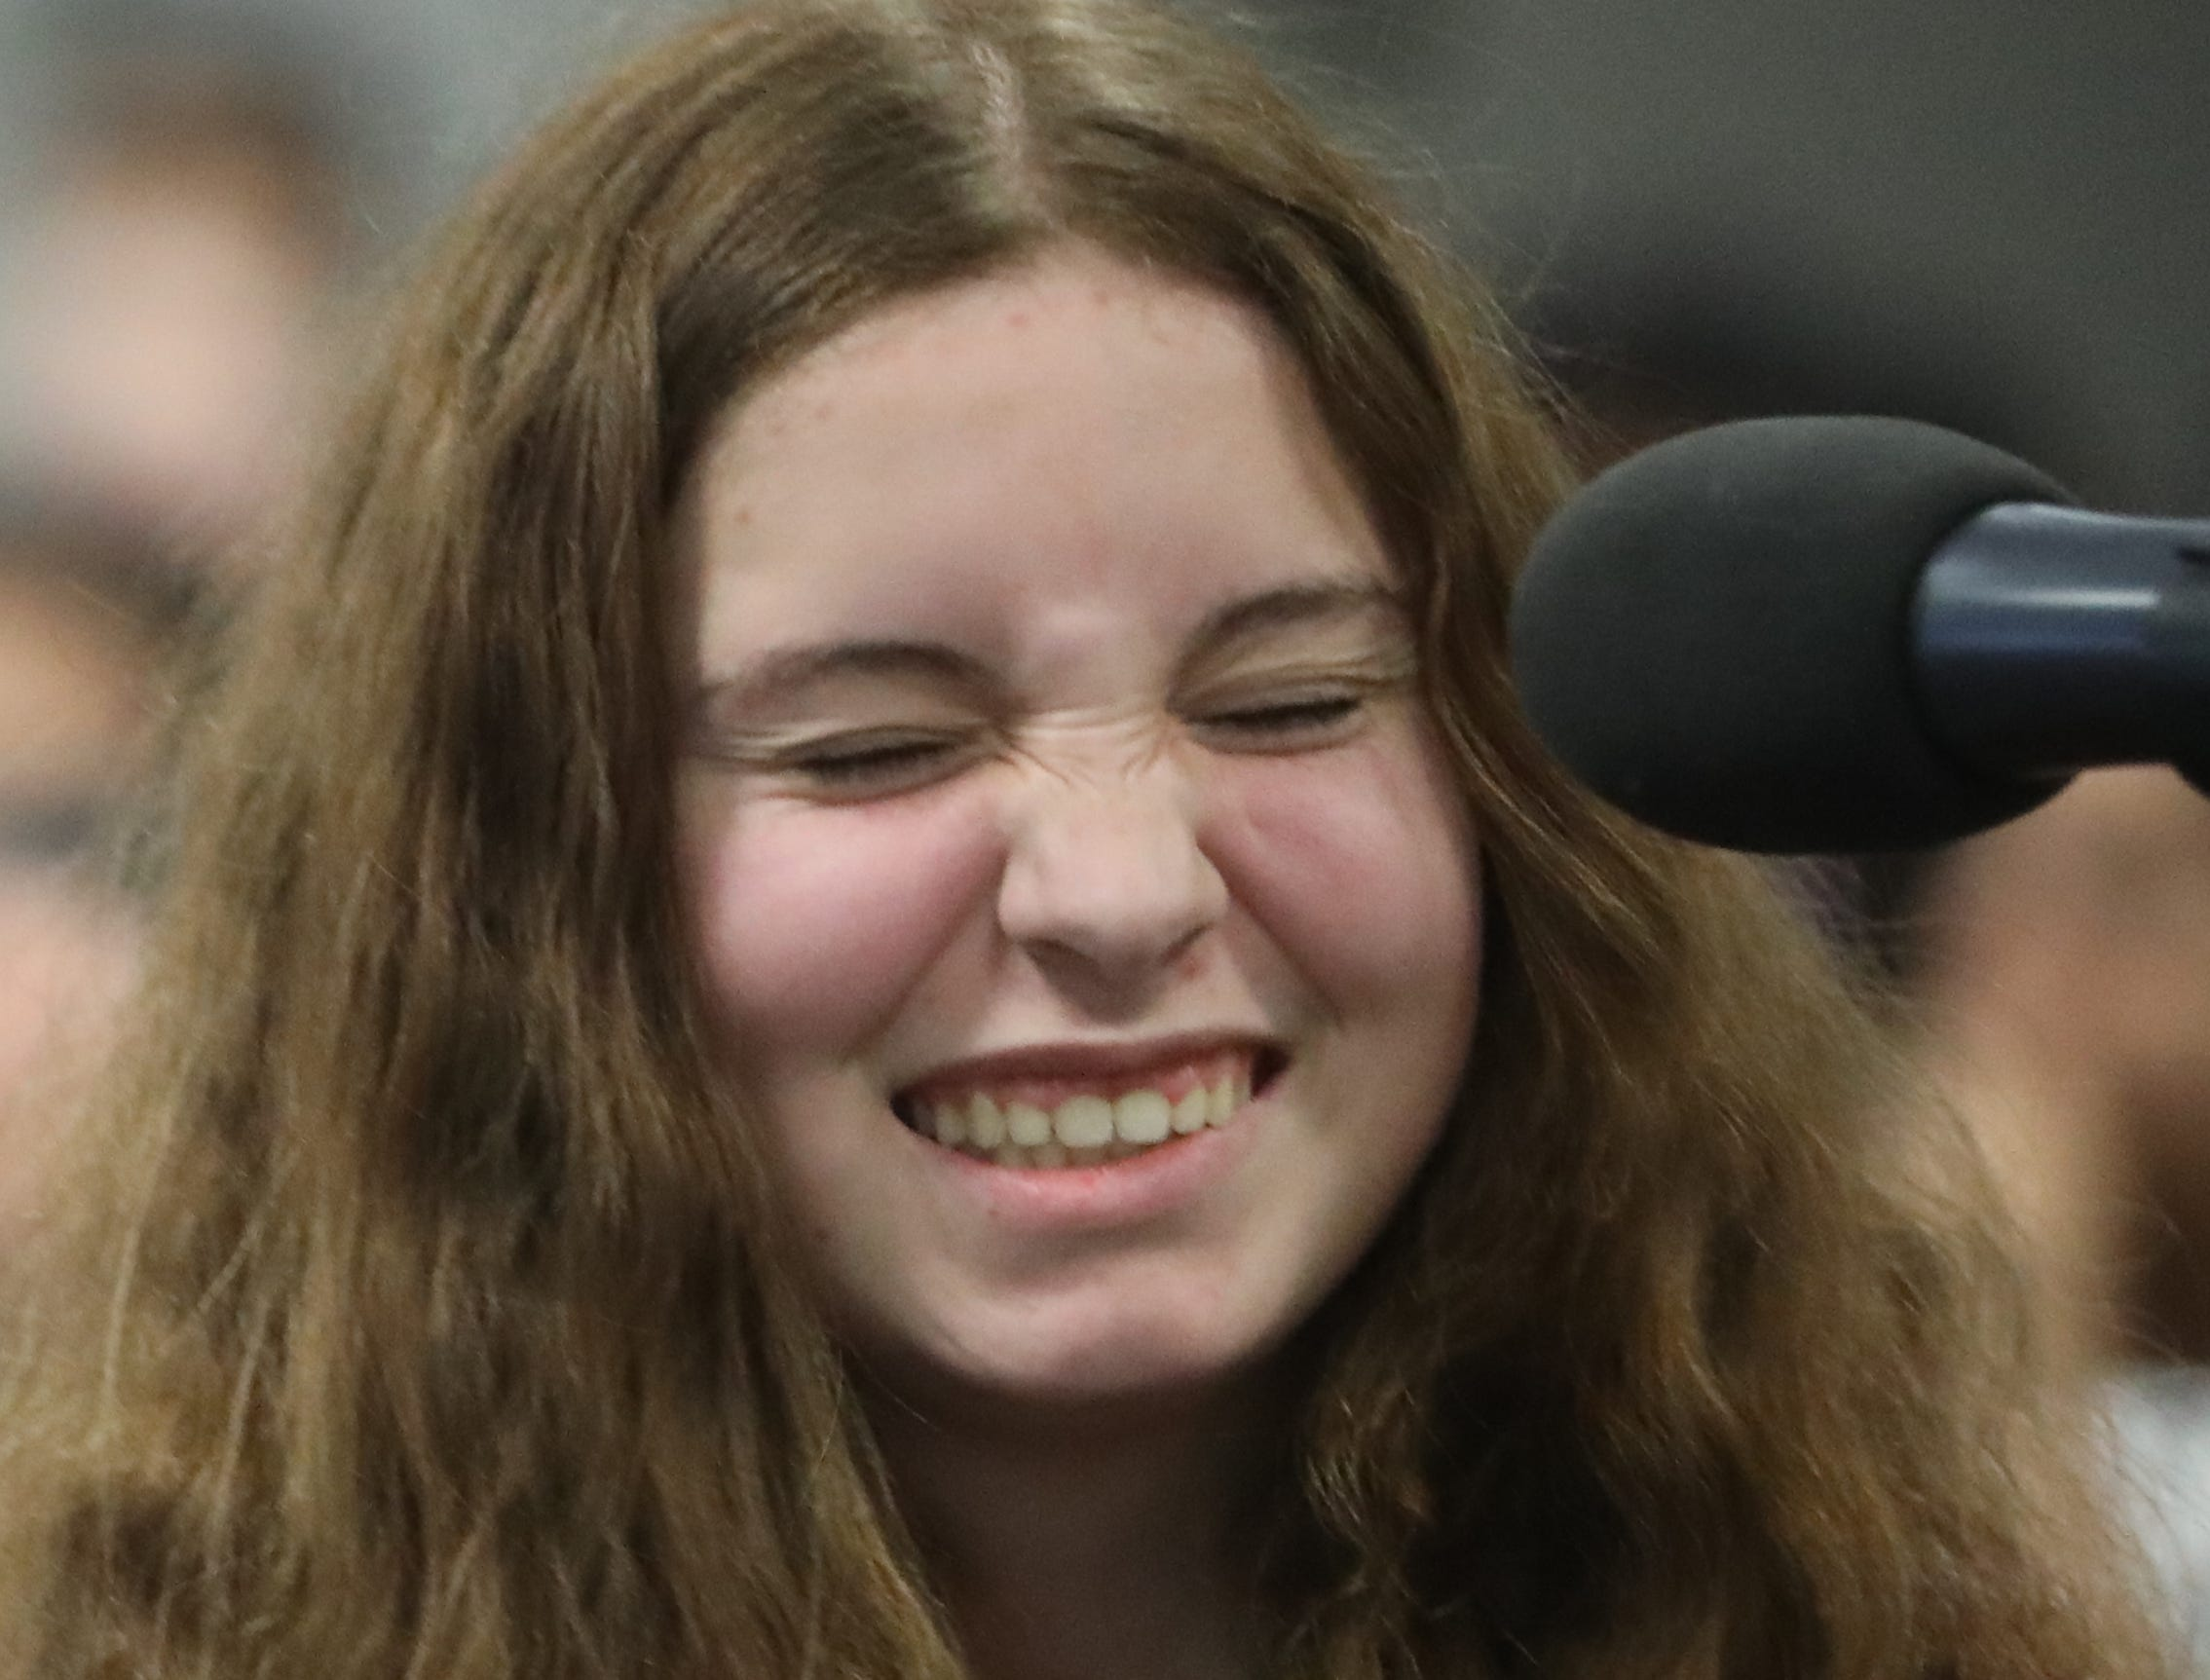 Anna Harms, of Wyckoff, is thrilled to spell her third round word correct, during the 2019 North Jersey Spelling Bee, in Paramus. Thursday, March 14, 2019